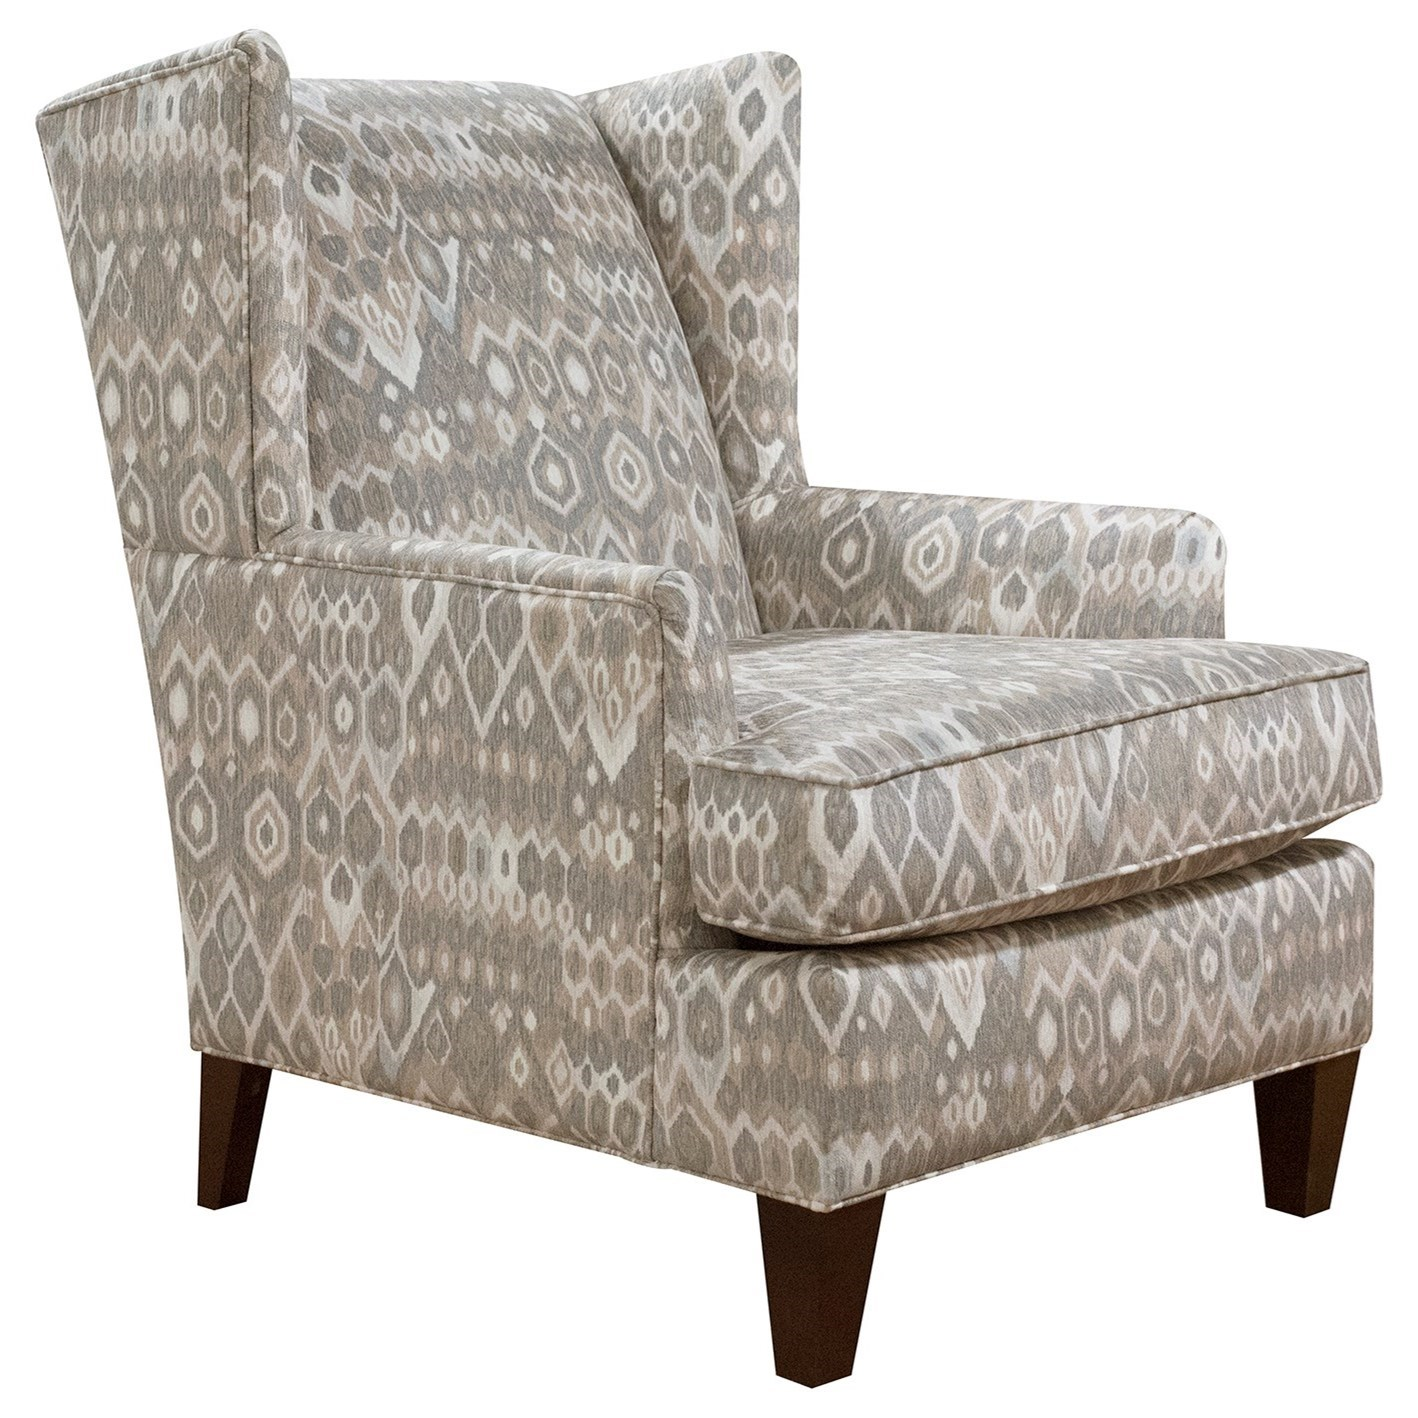 Reynolds Upholstered Wing Chair by England at Virginia Furniture Market